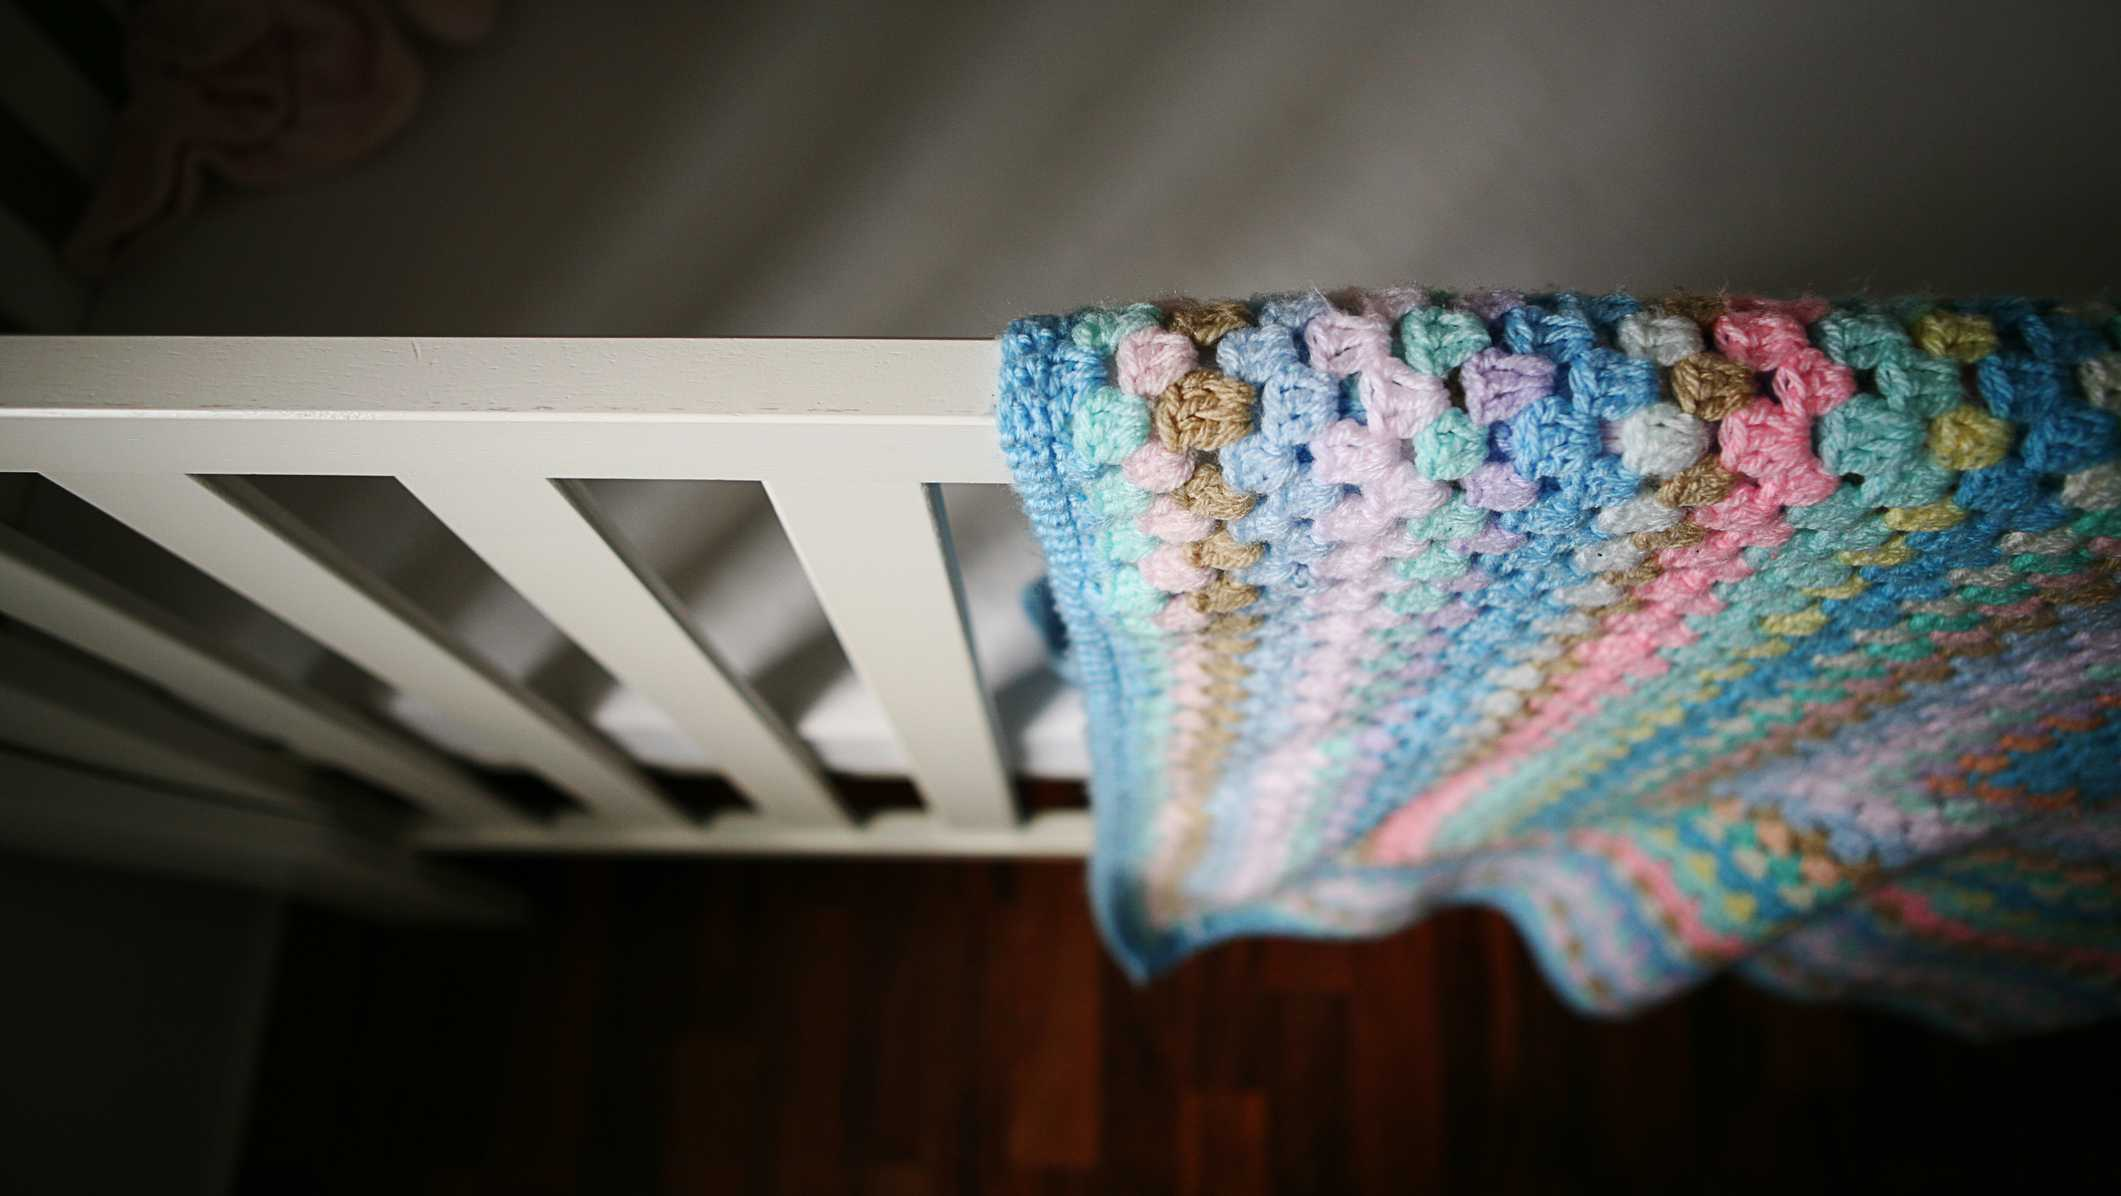 Empty baby's cot with shadows and crocheted blanket.